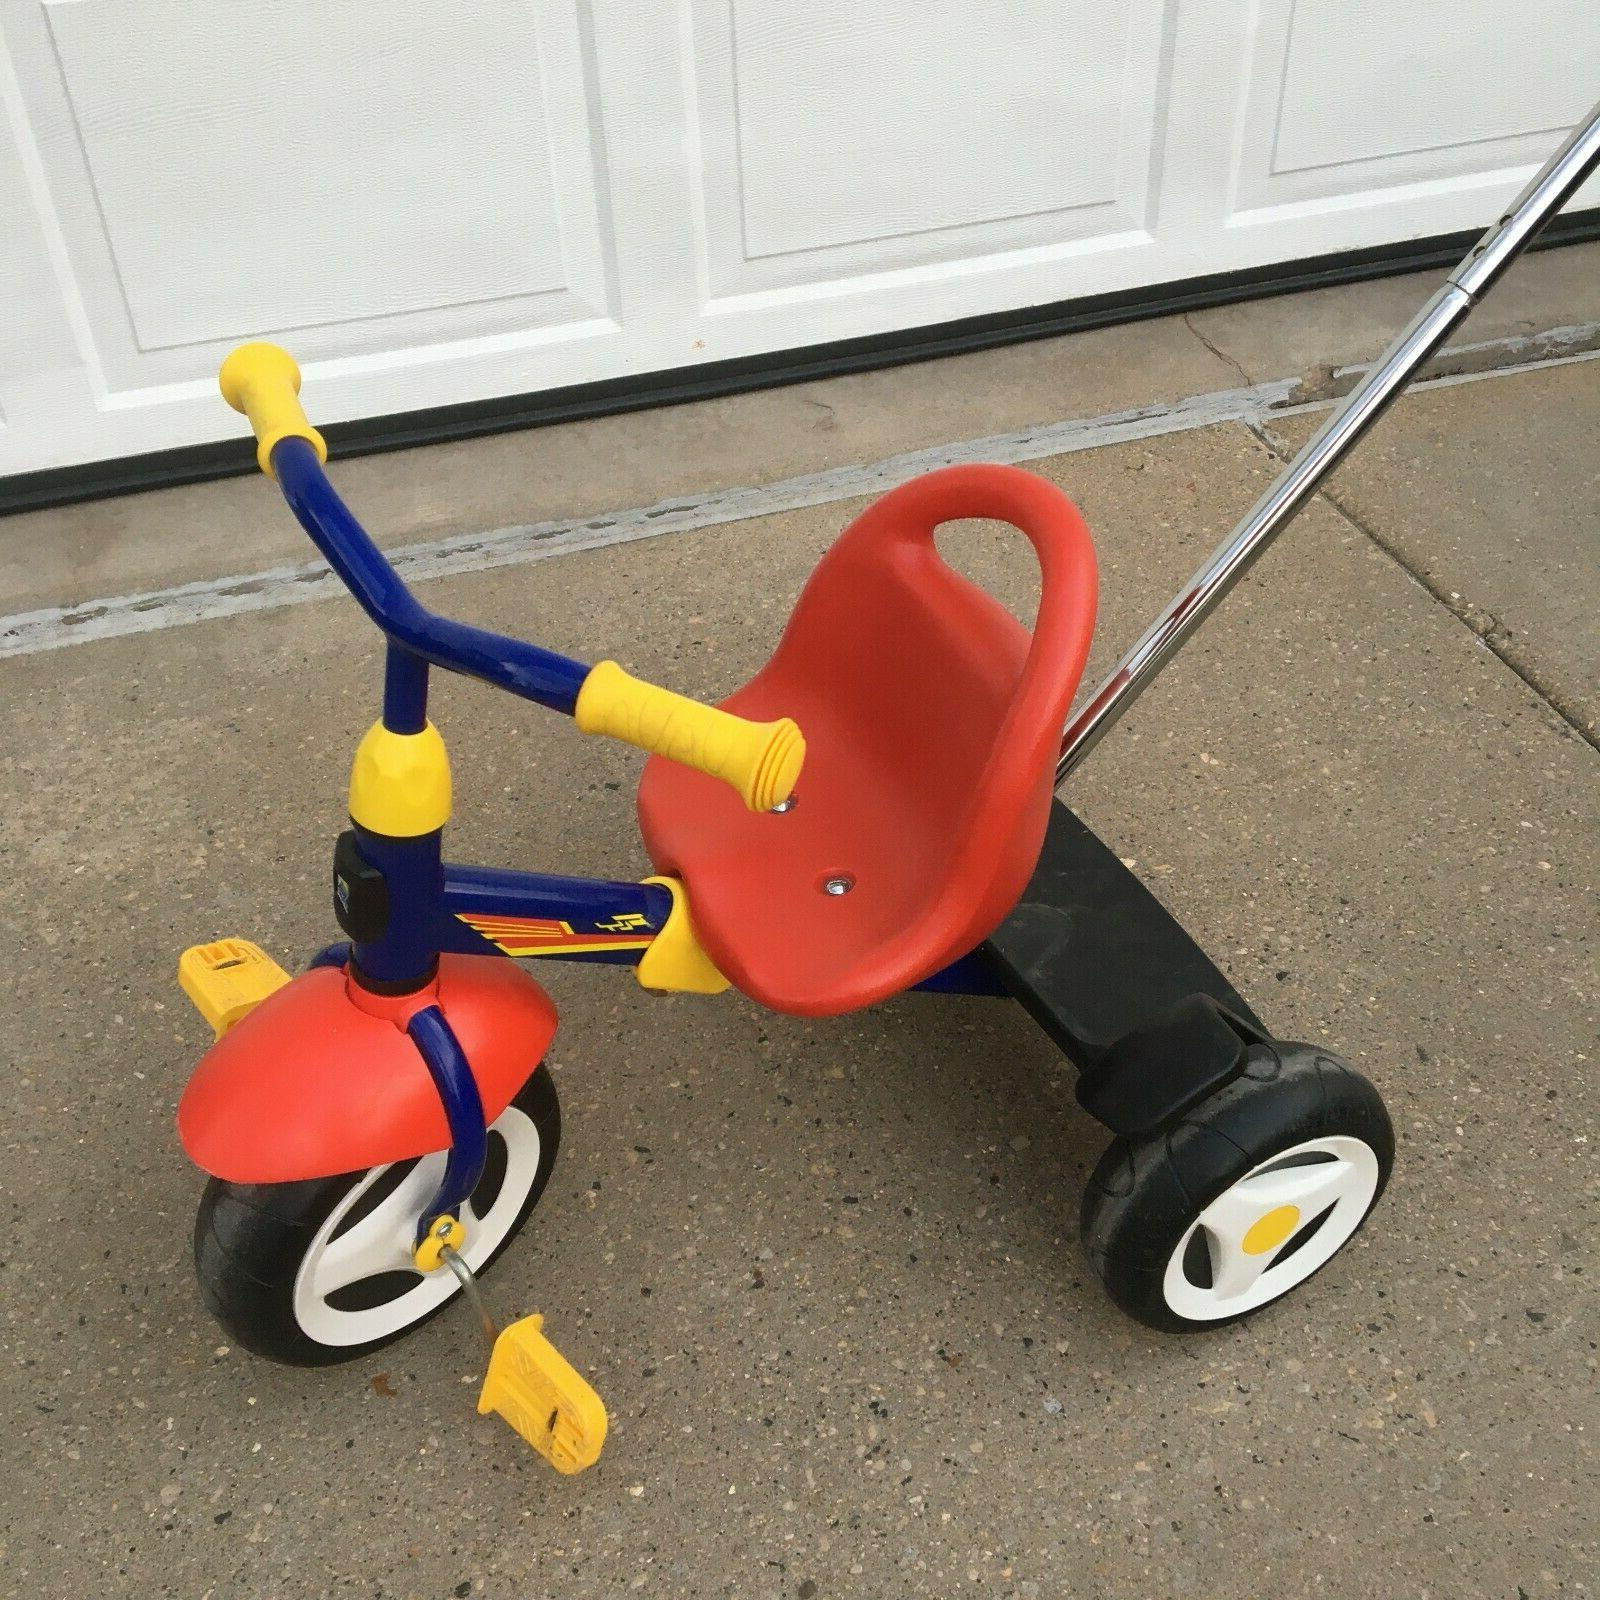 Kettler Tricycle and Push Bar in Germany